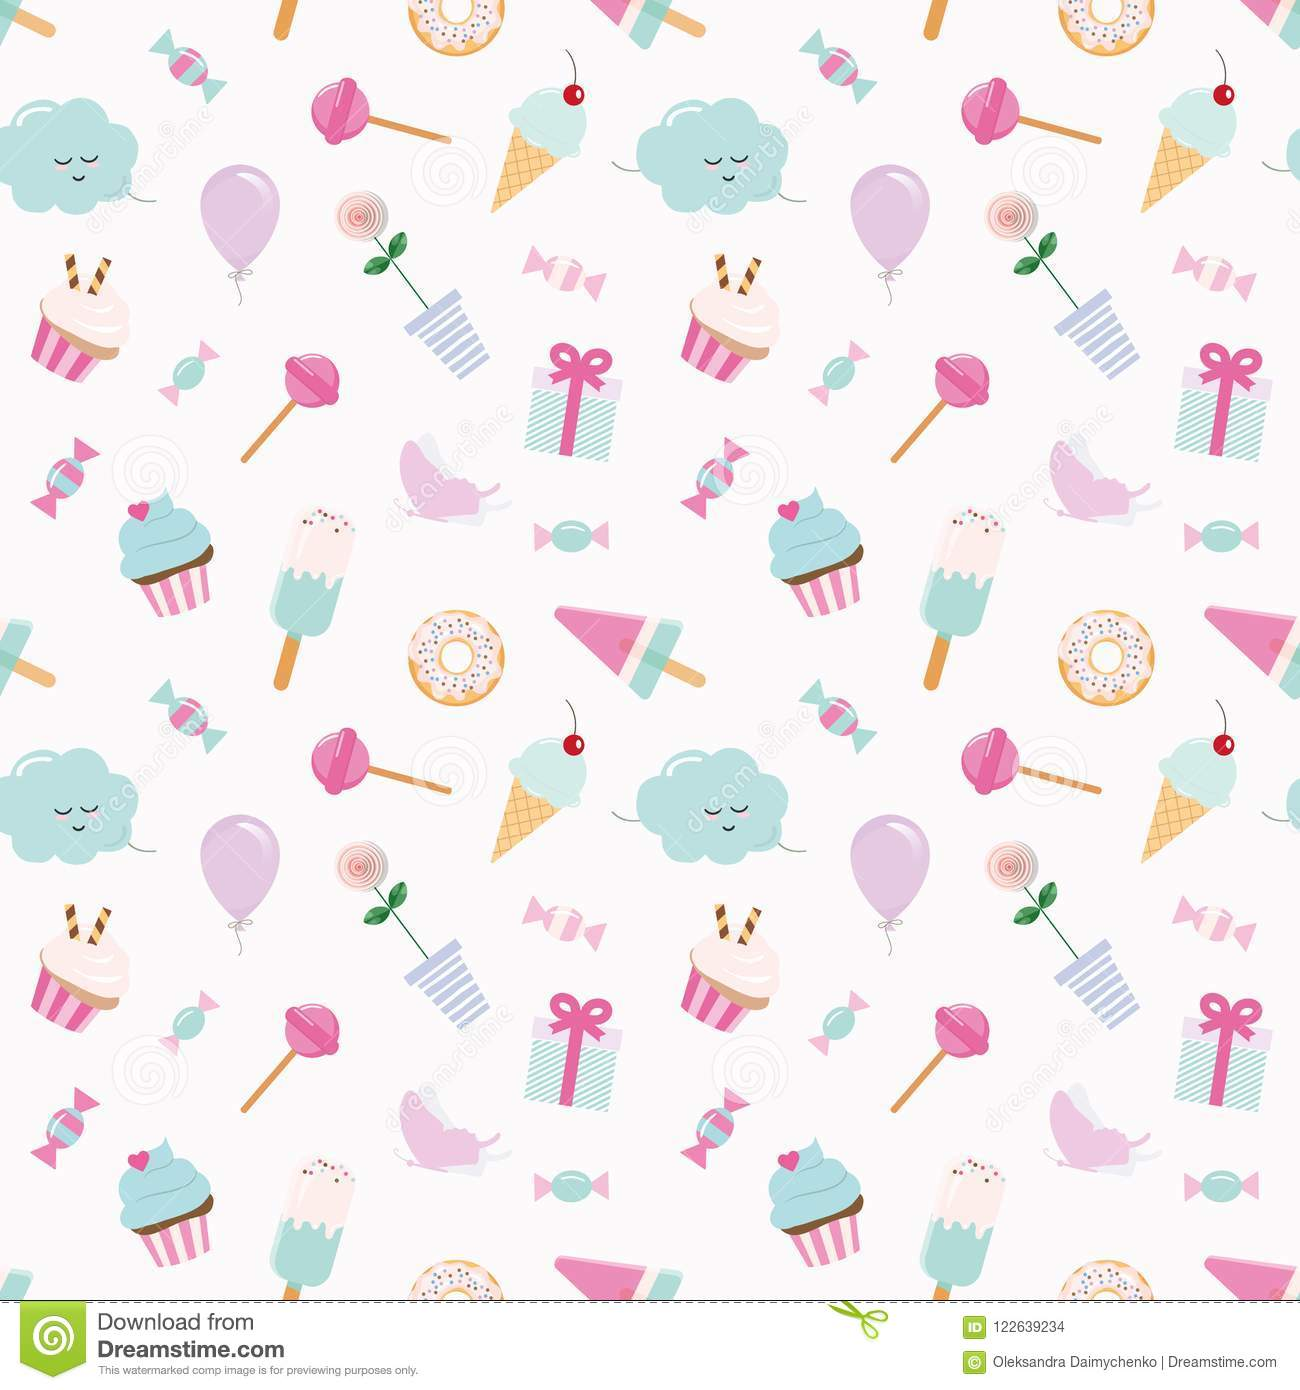 Girly pattern background with sweets and cute elements. Pastel pink and blue. Raster